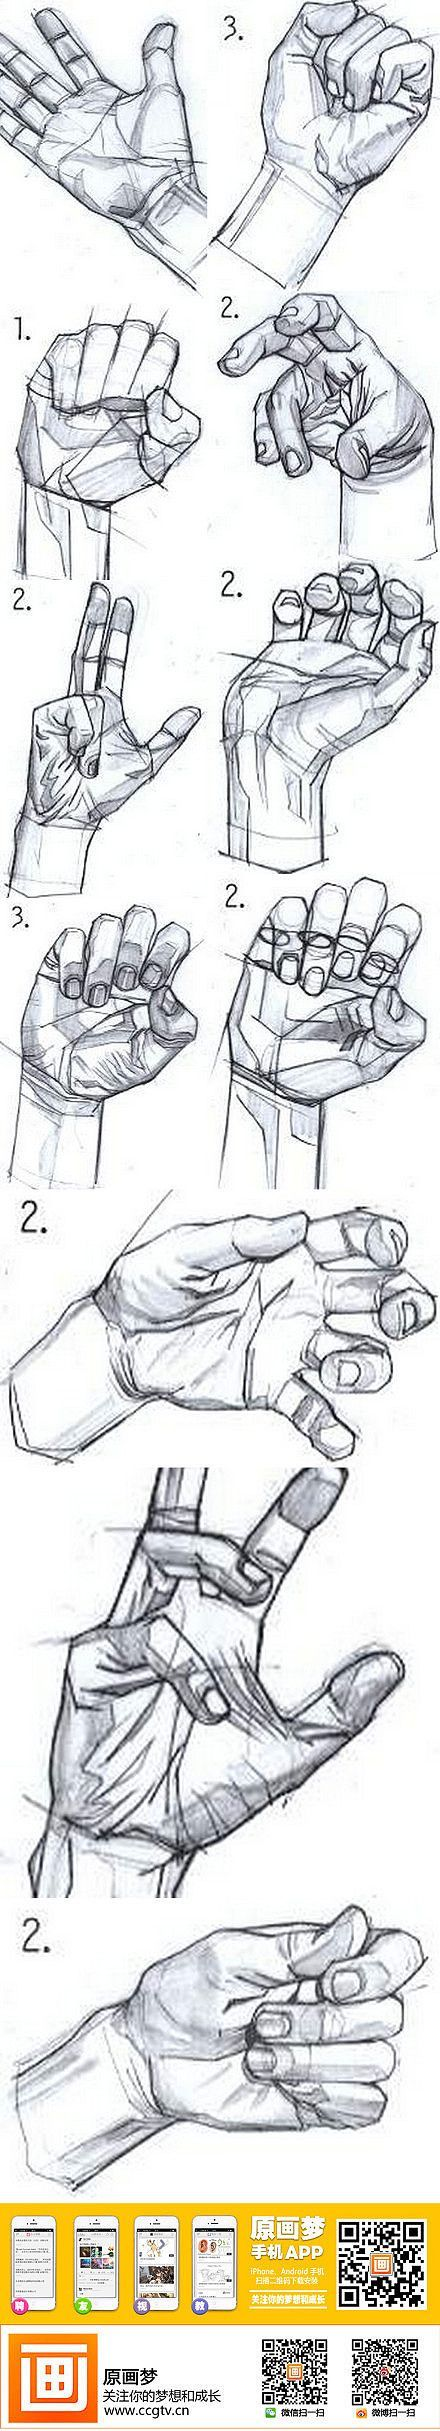 I love the bold lines and the way the hand has been drawn in a variety of positions